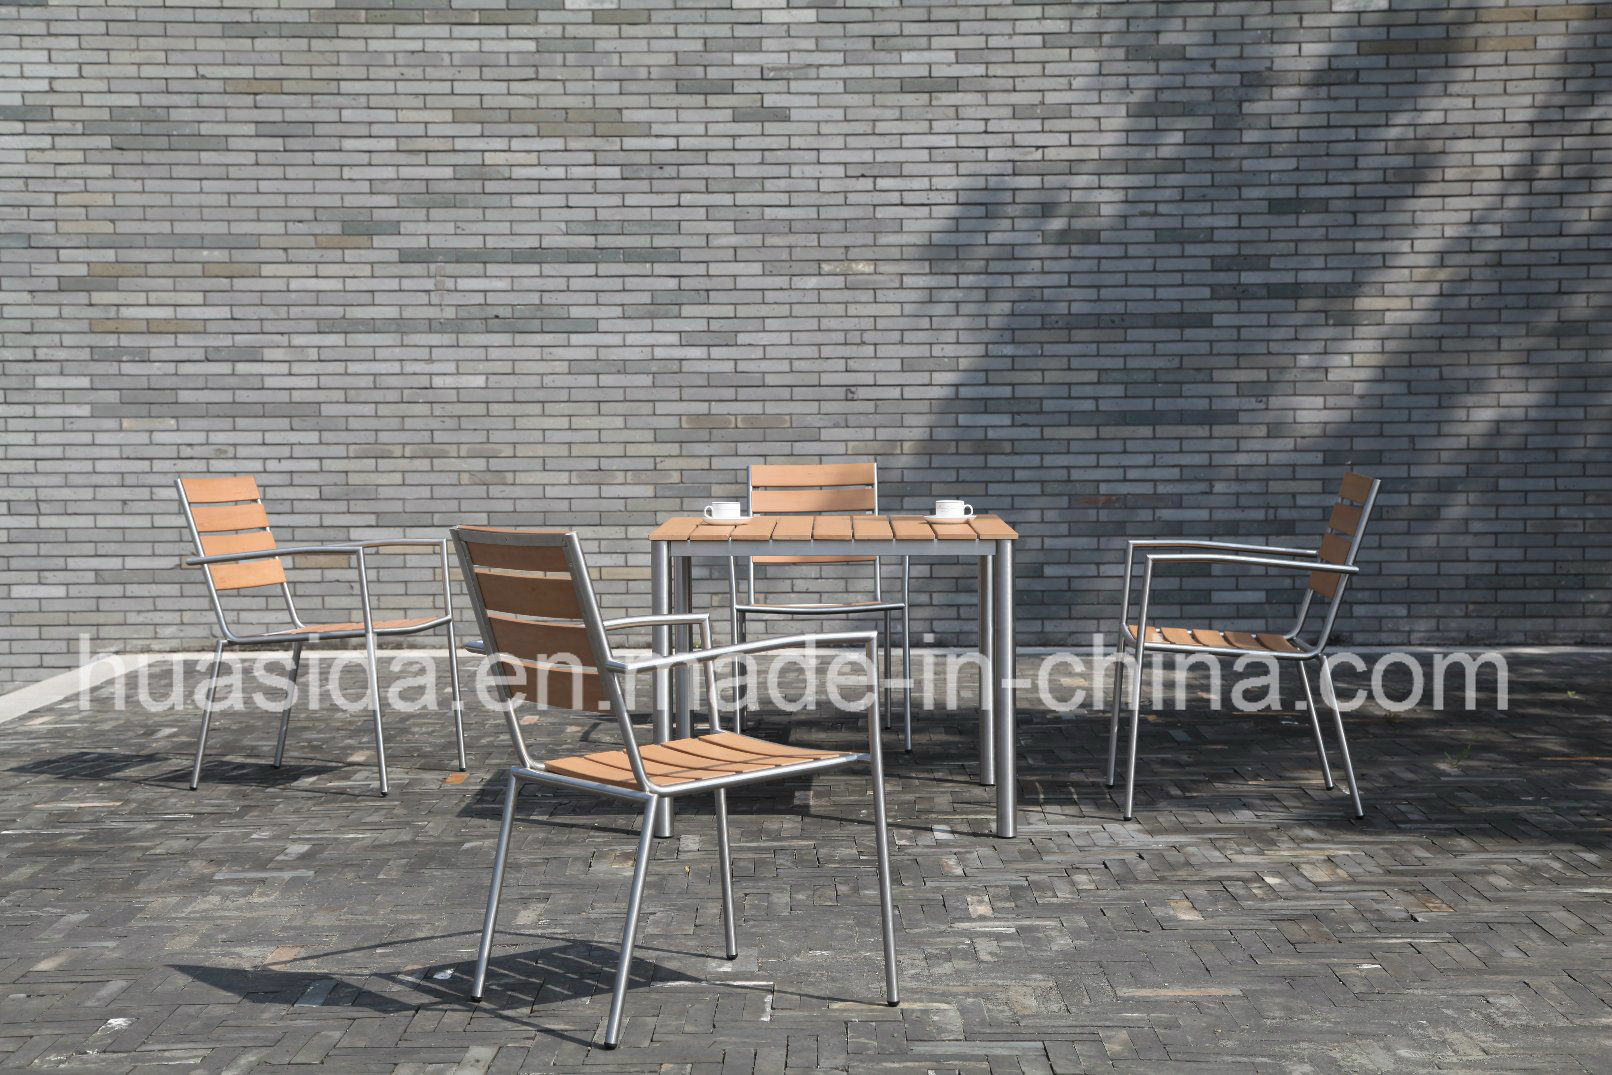 Outdoor Furniture Restaurant 4-Seats Stainless Steel Table Set